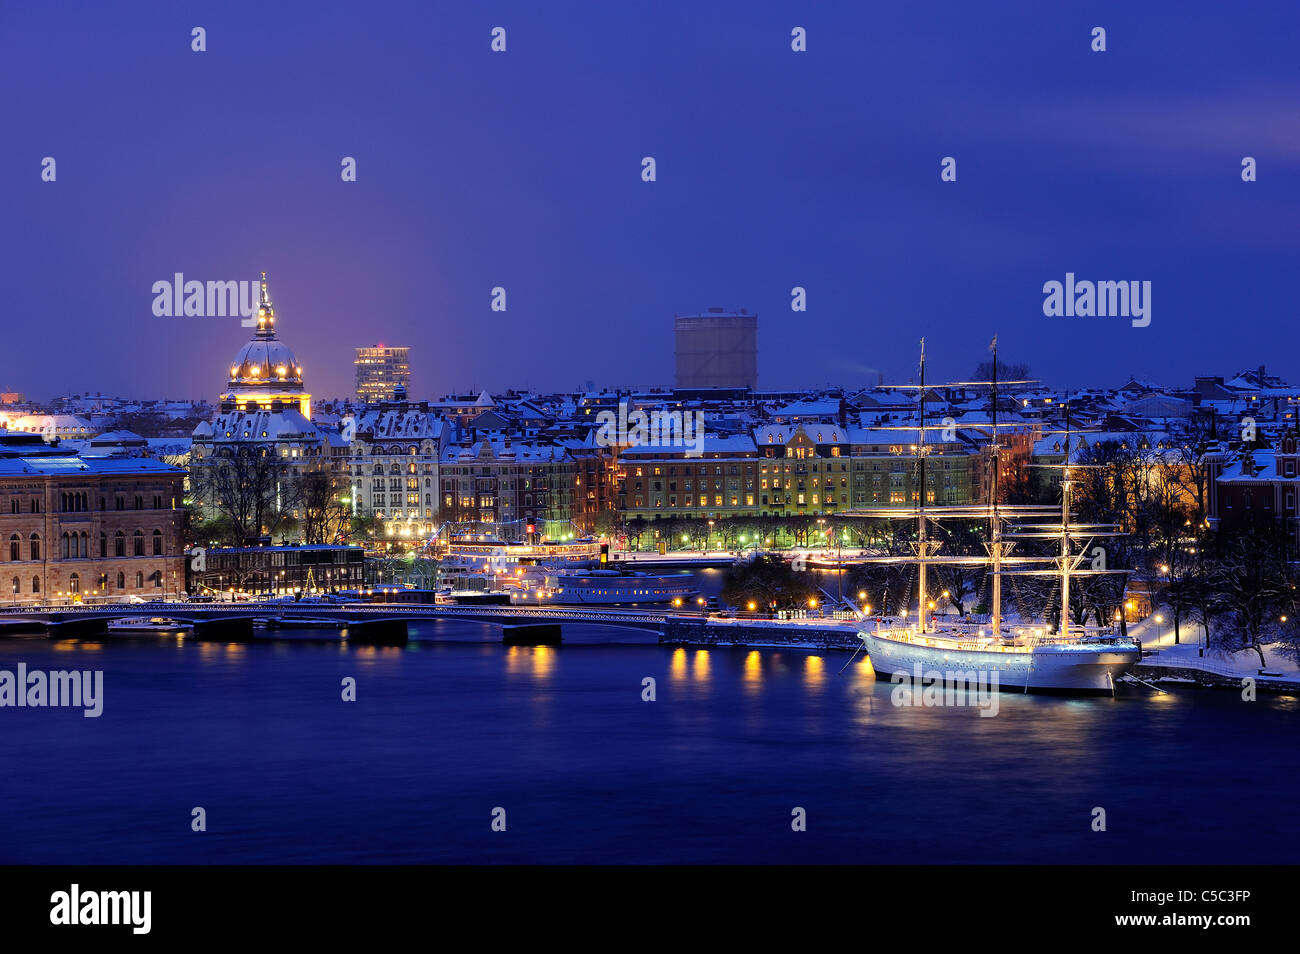 Af Chapman with illuminated buildings and placid lake in foreground, Stockholm, Sweden - Stock Image